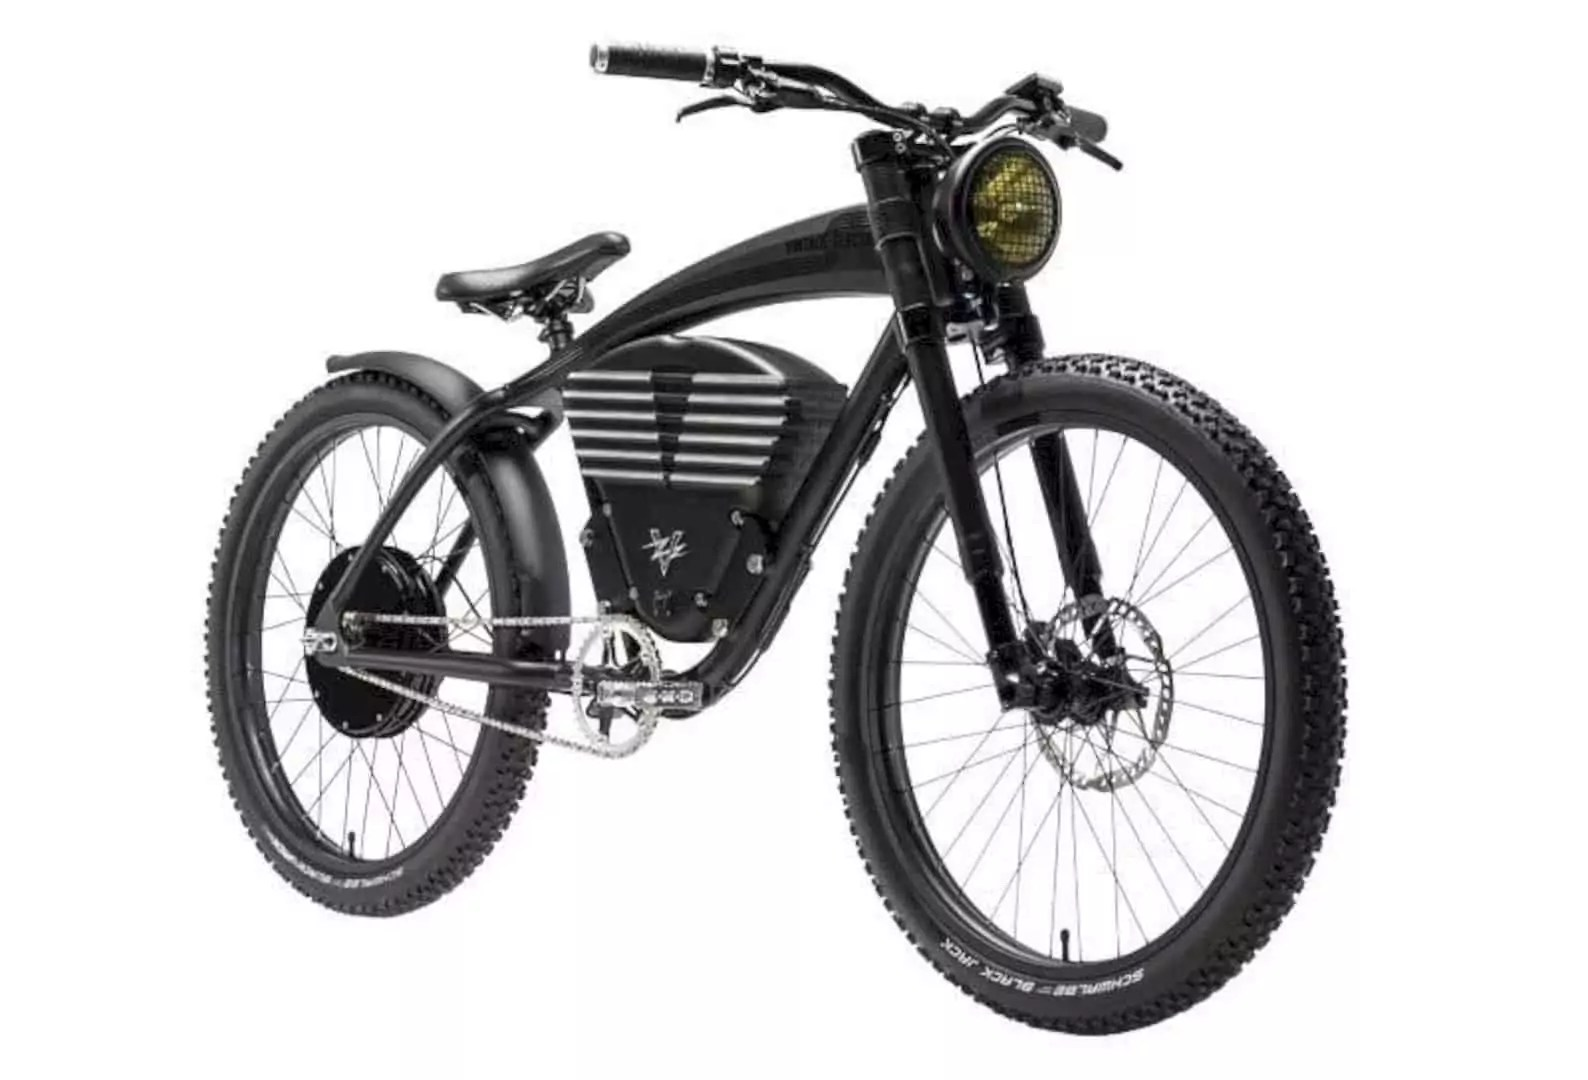 Scrambler S An Off Road Electric Bike For The Best